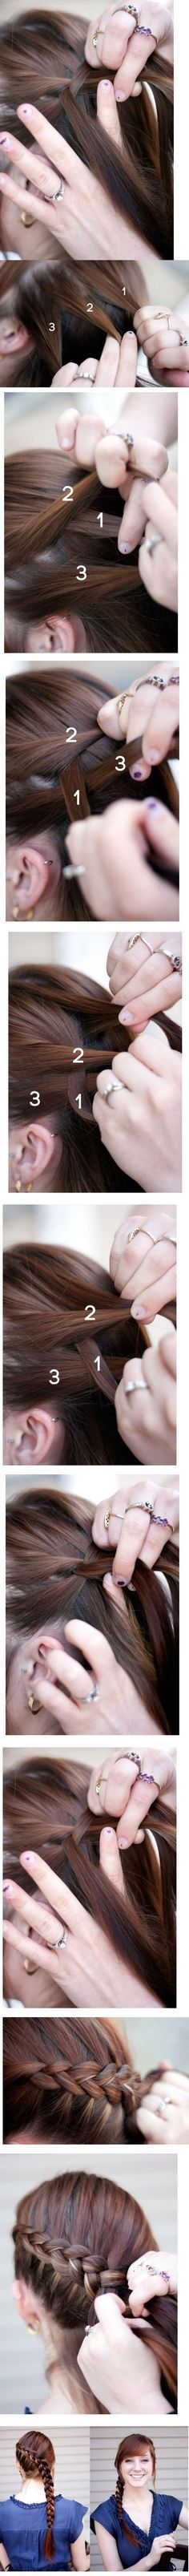 20 40 Pretty Braided Crown Hairstyle Tutorials and Ideas